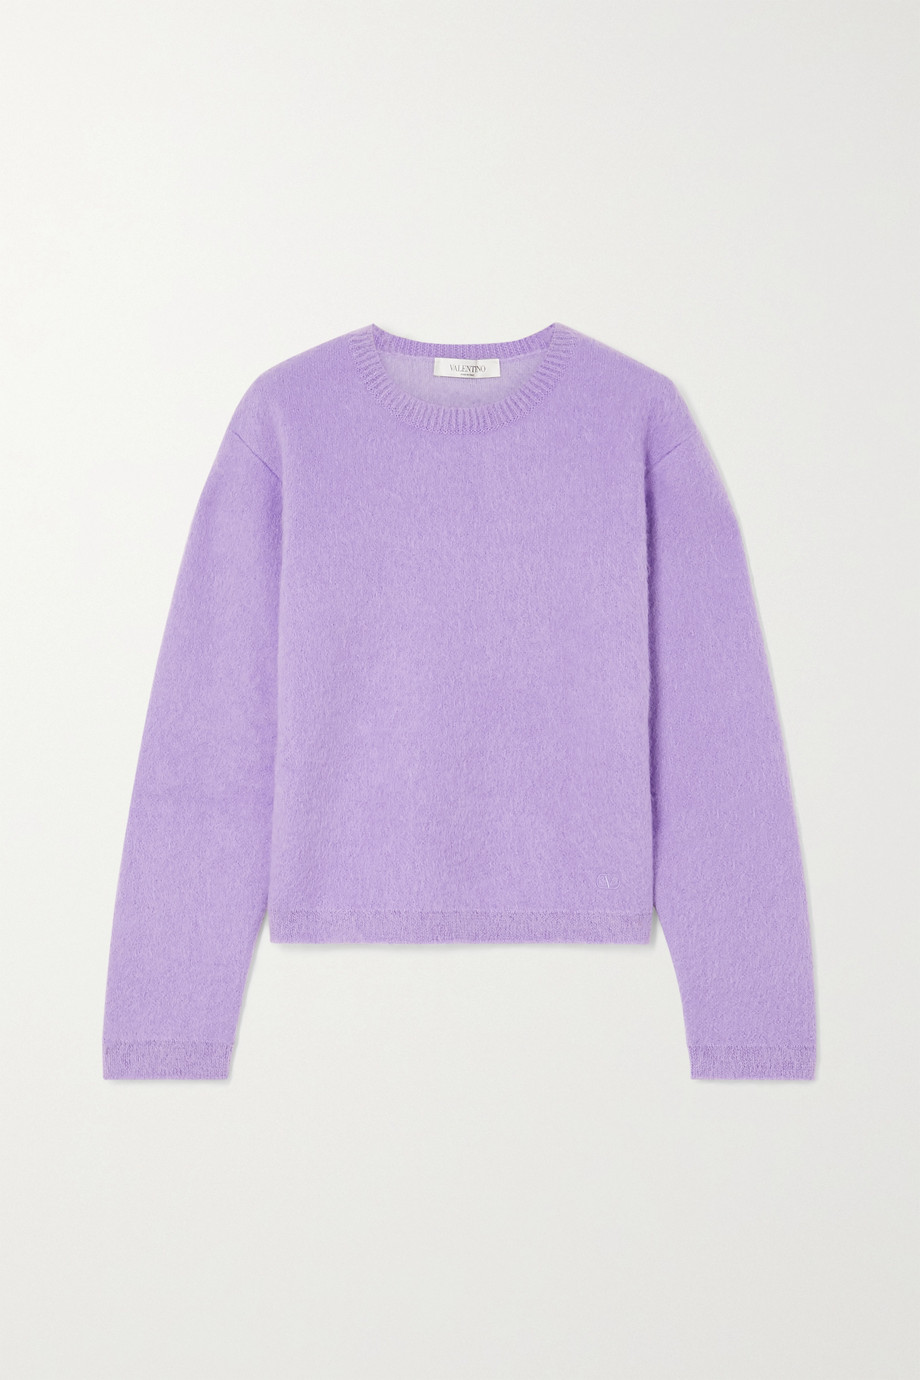 VALENTINO Wool-blend sweater